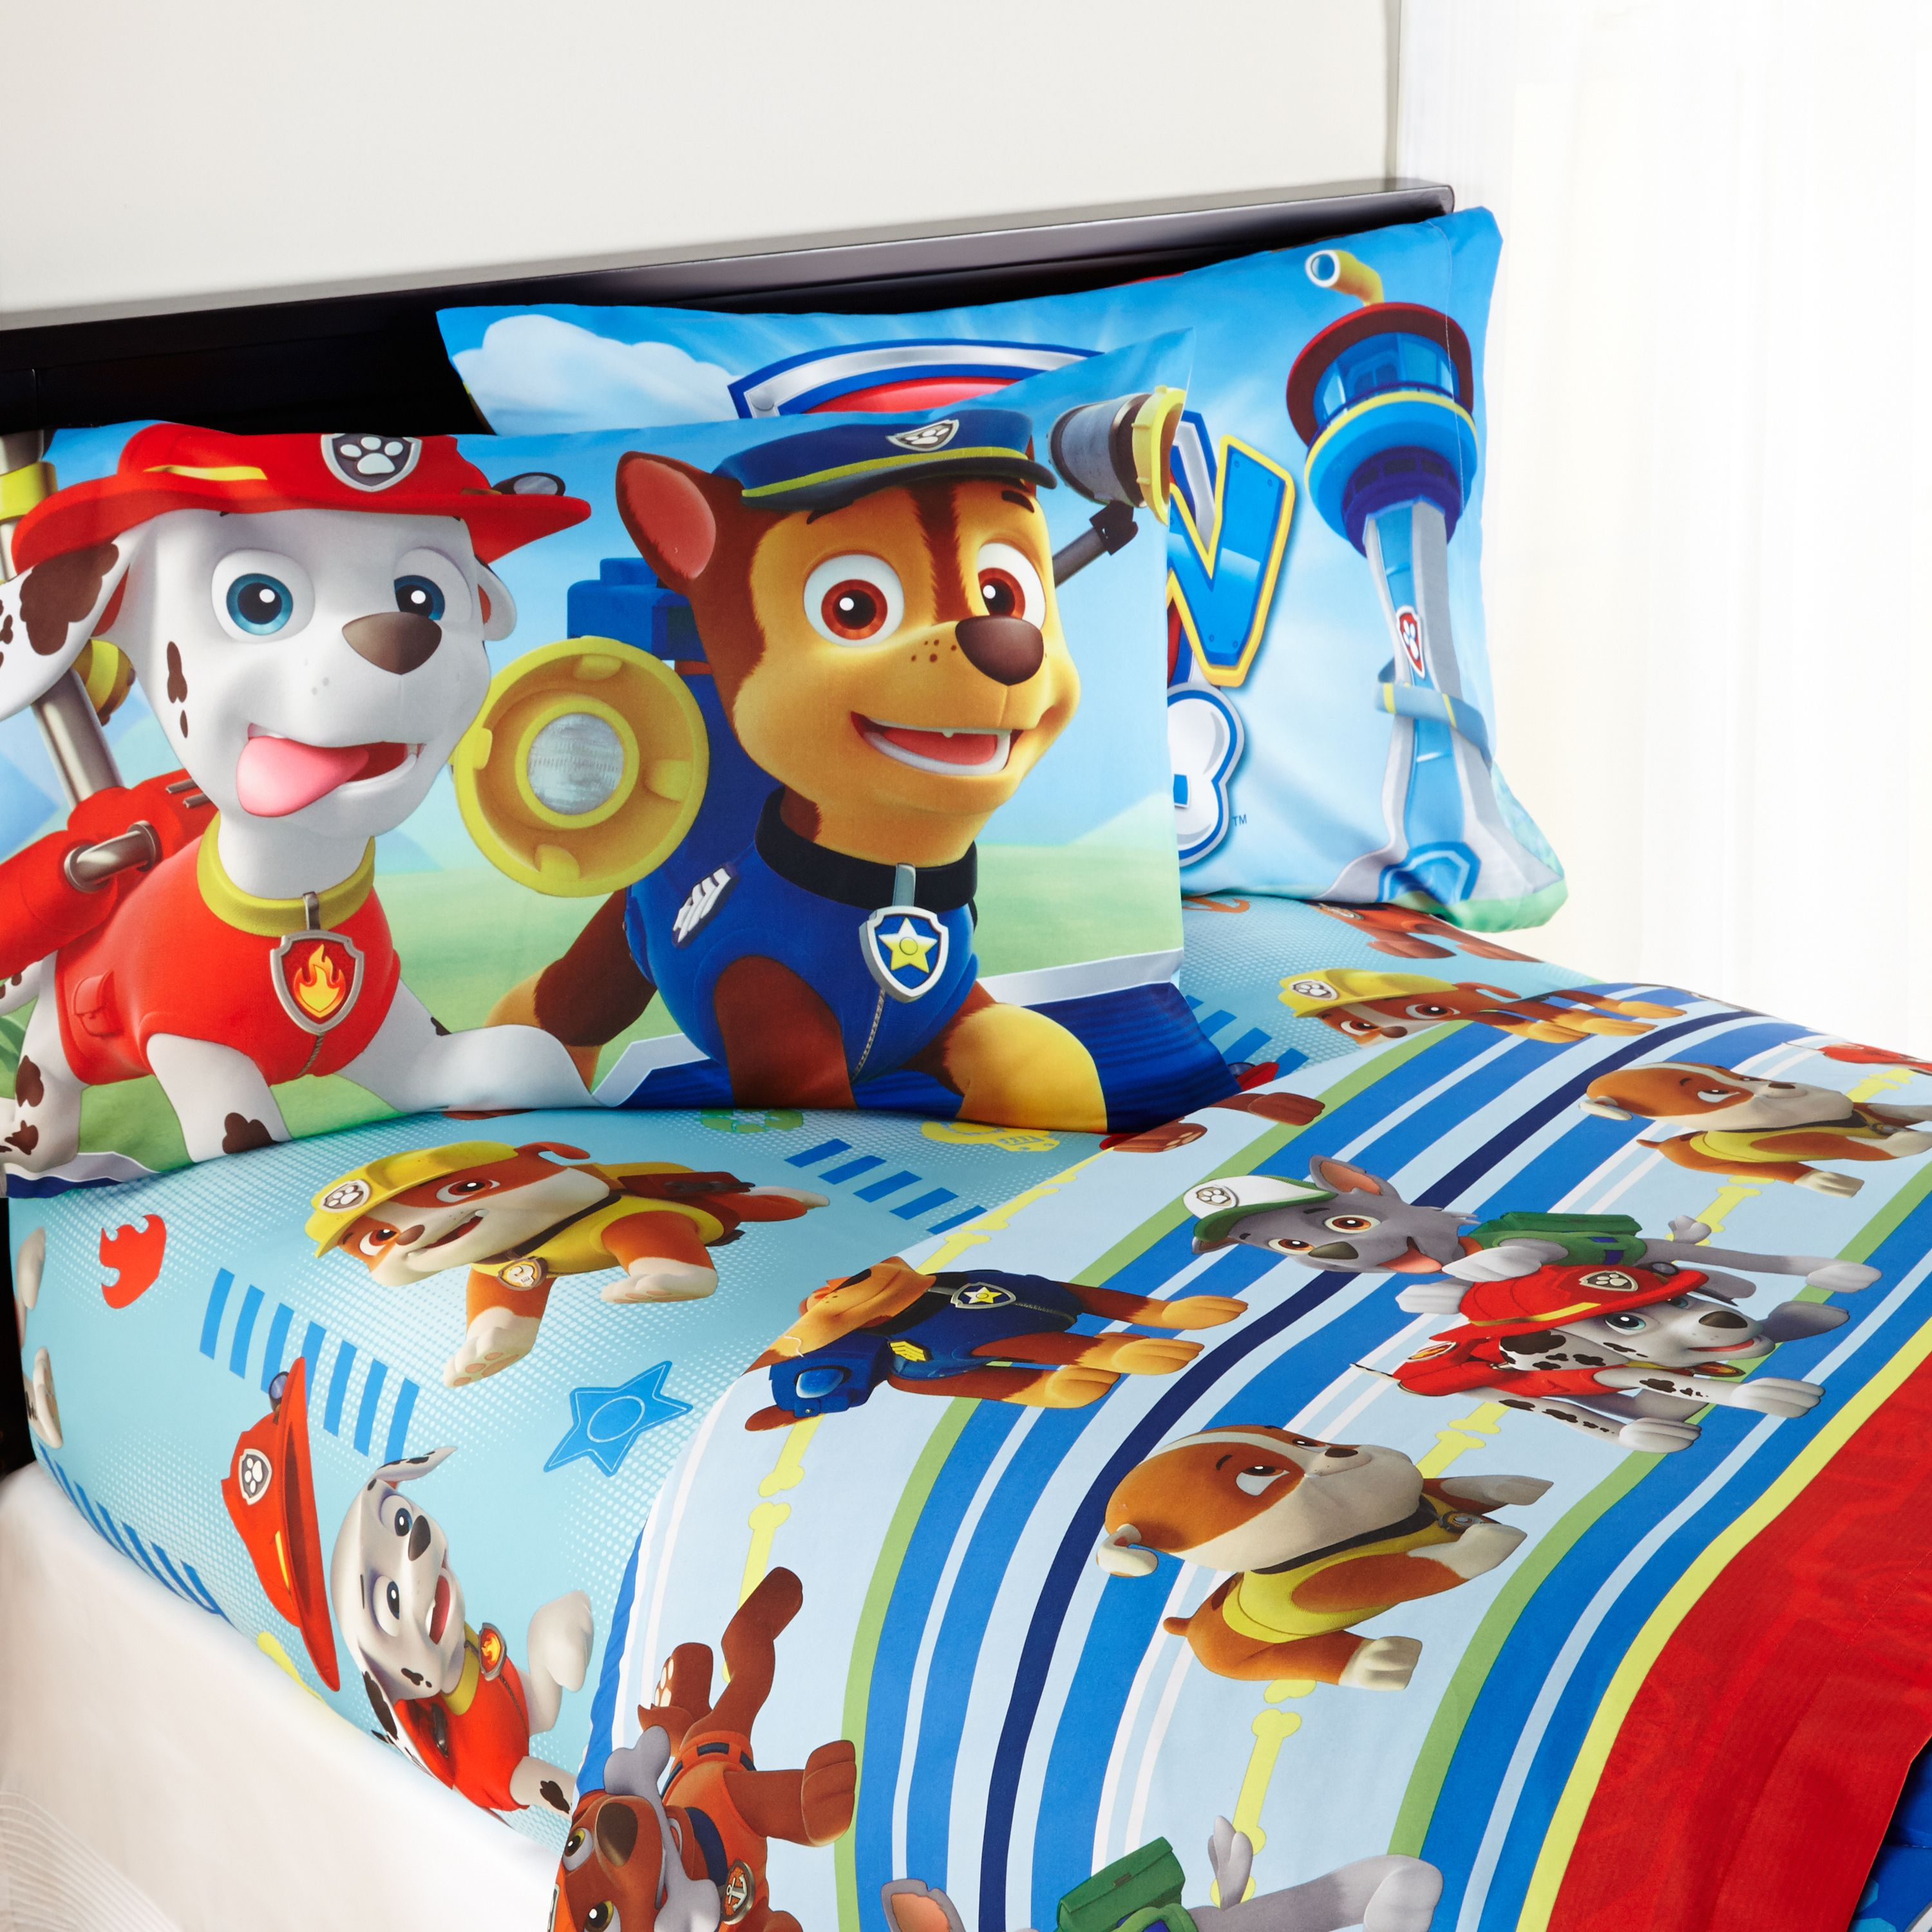 Nickelodeon's Paw Patrol 'Puppy Hero' Kids Sheet Set